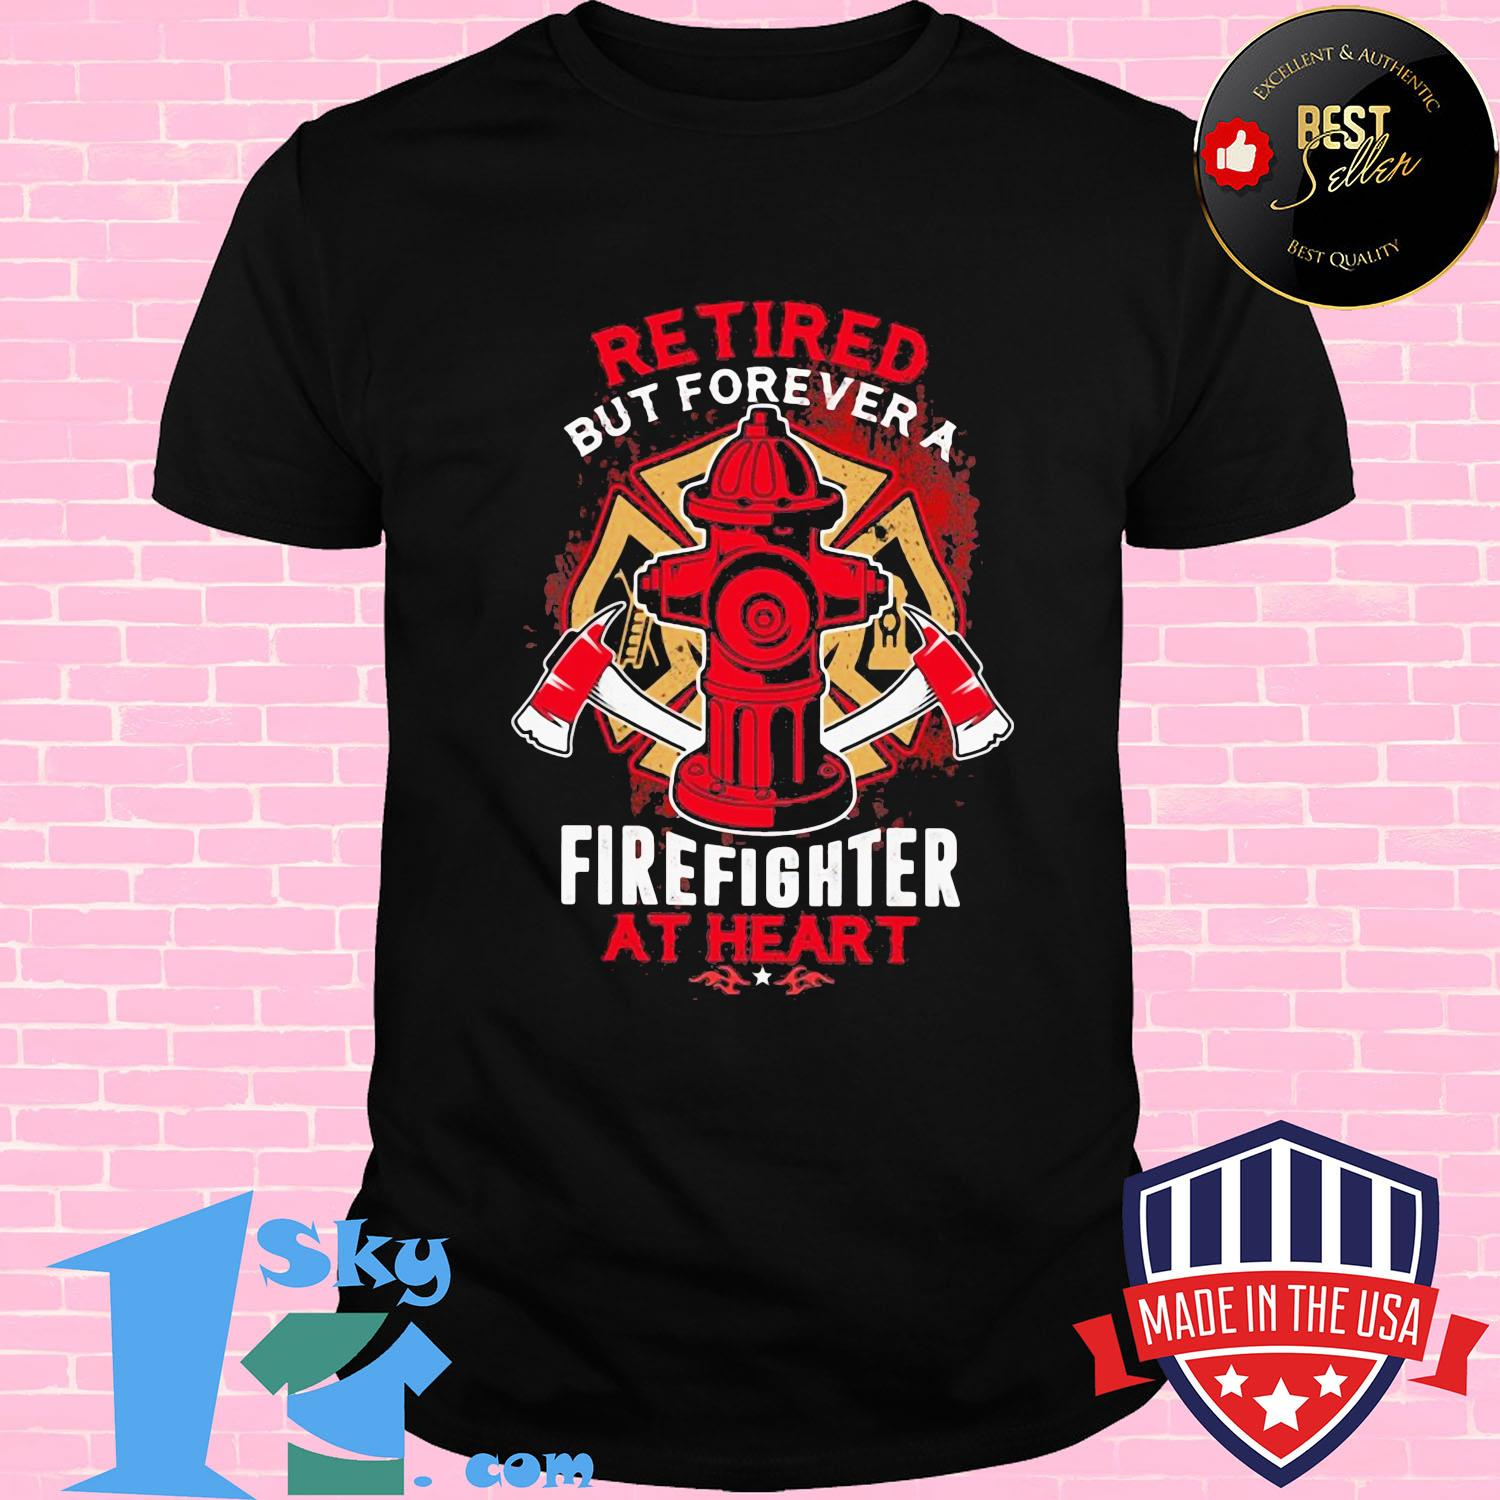 Retires but forever a firefighter at heart shirt